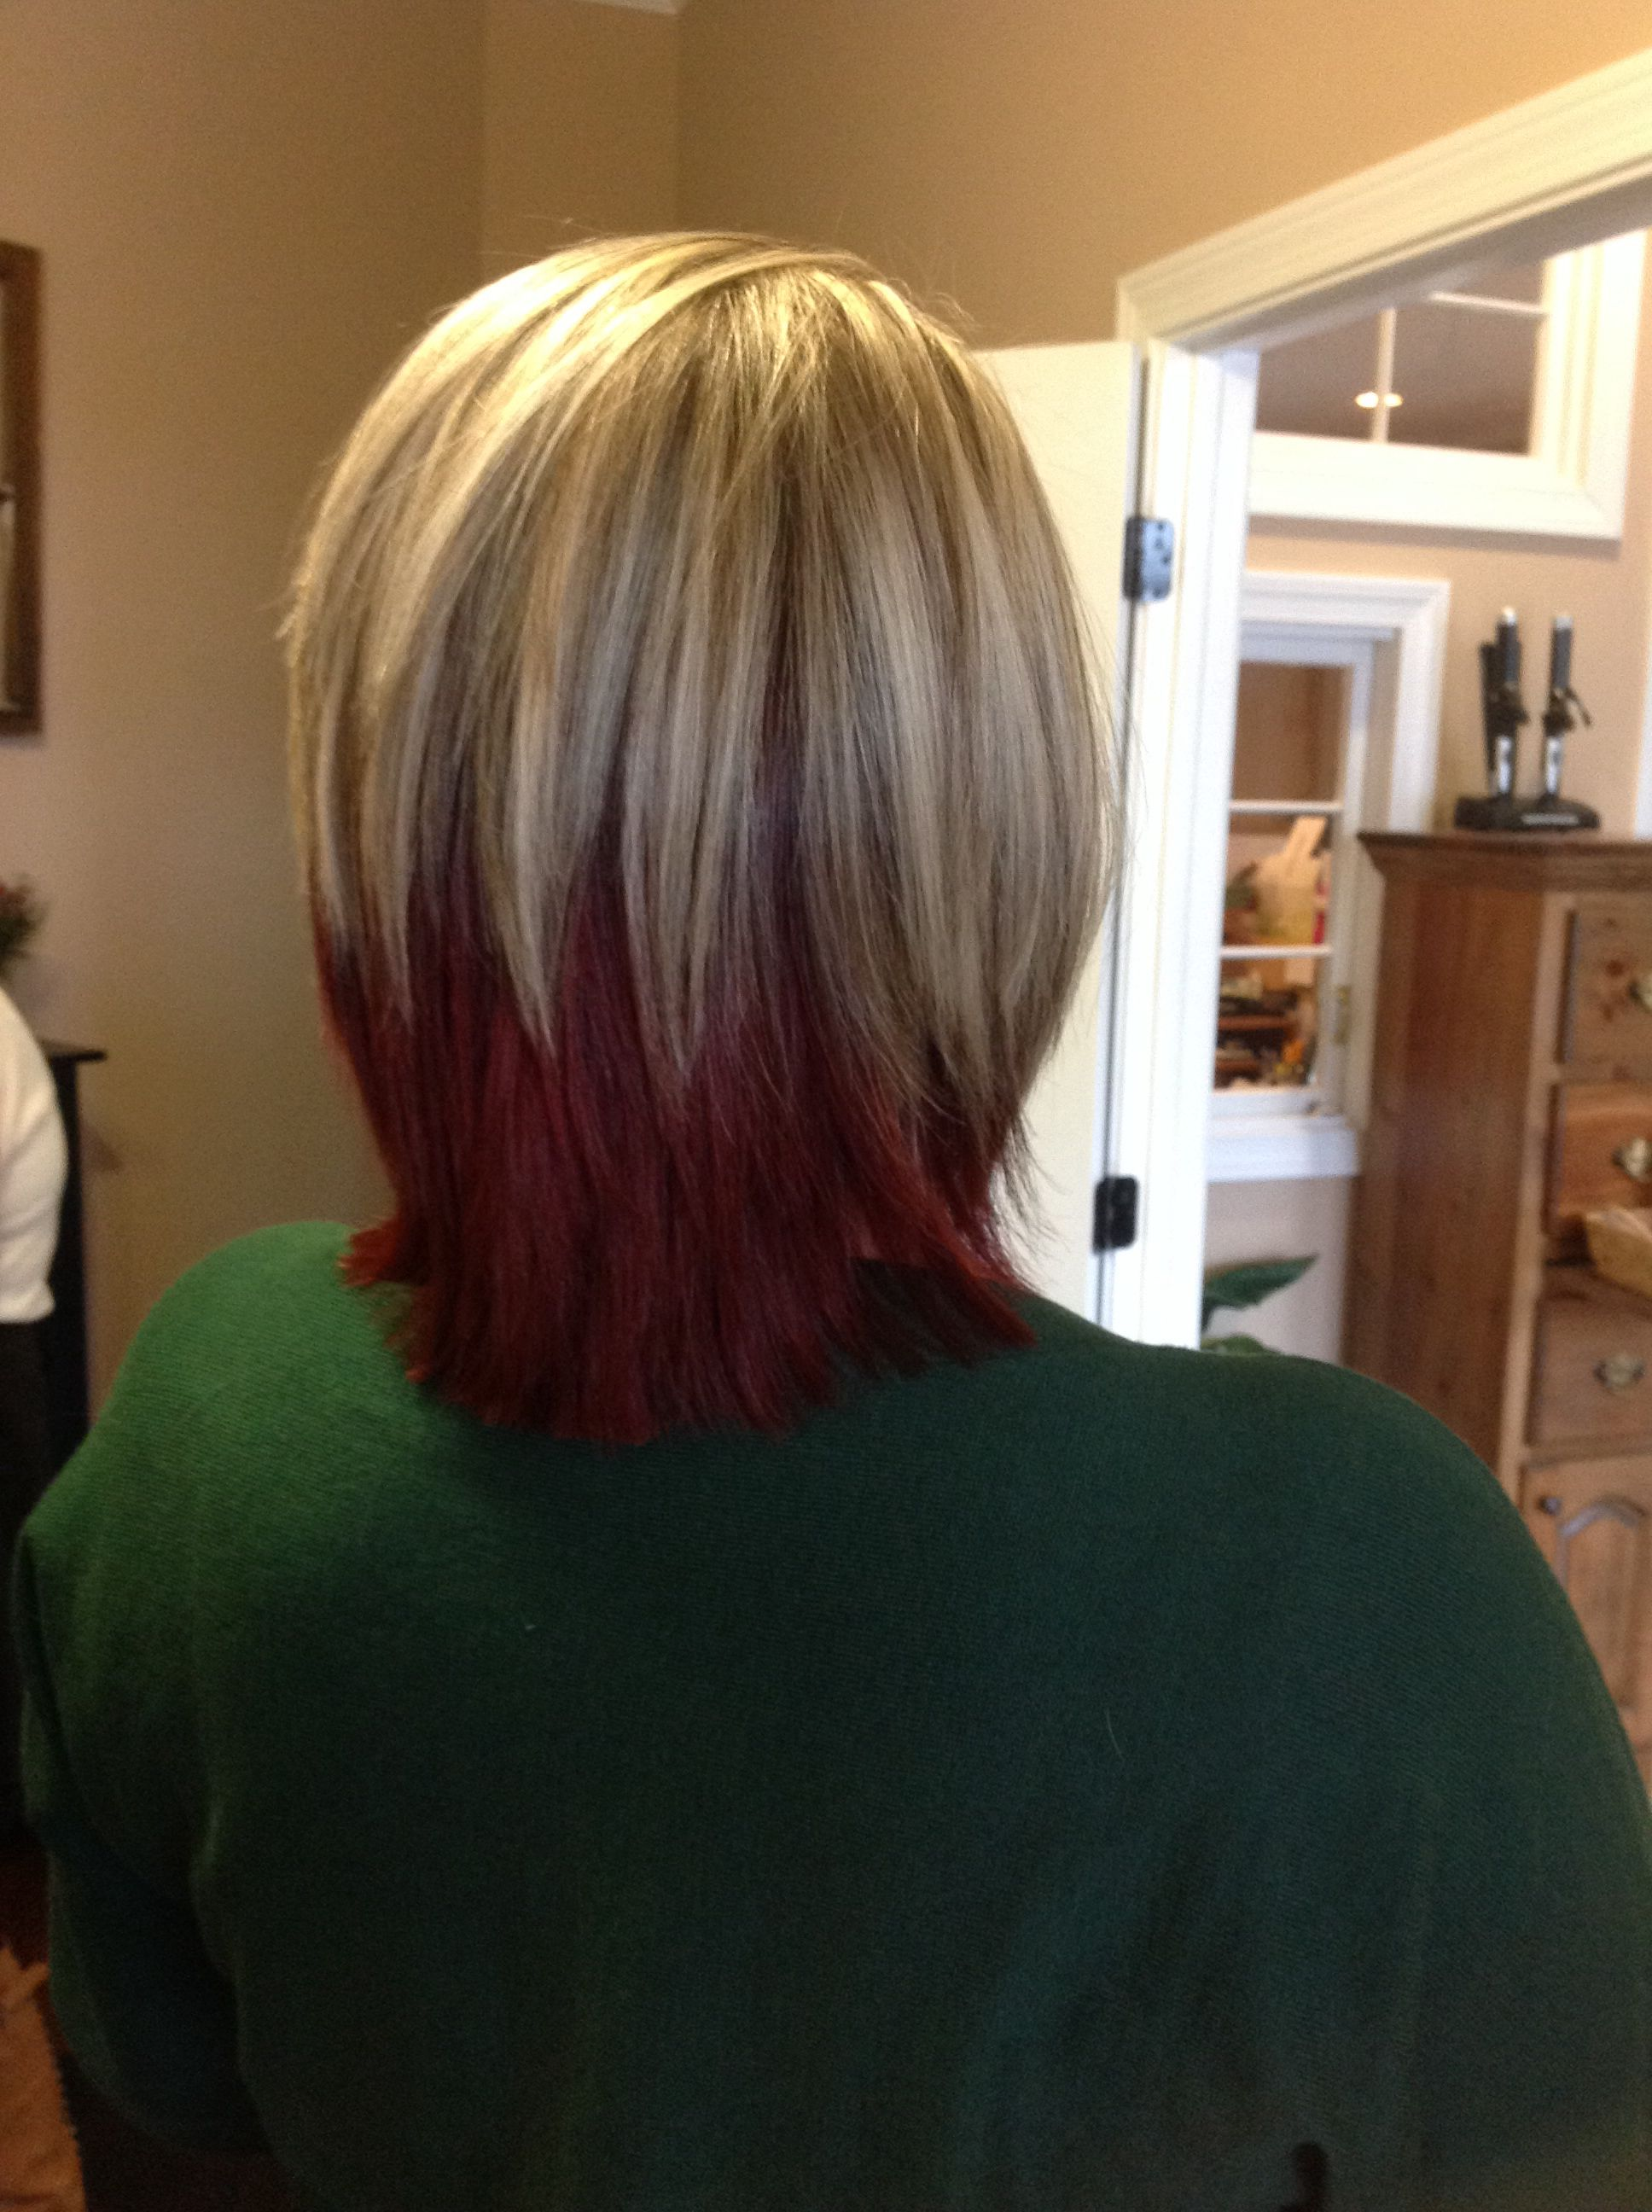 Pin By Spectra Hair Creations Daysp On Blonde Bombshell Red Hair Underneath Cute Hairstyles For Short Hair Hair Highlights